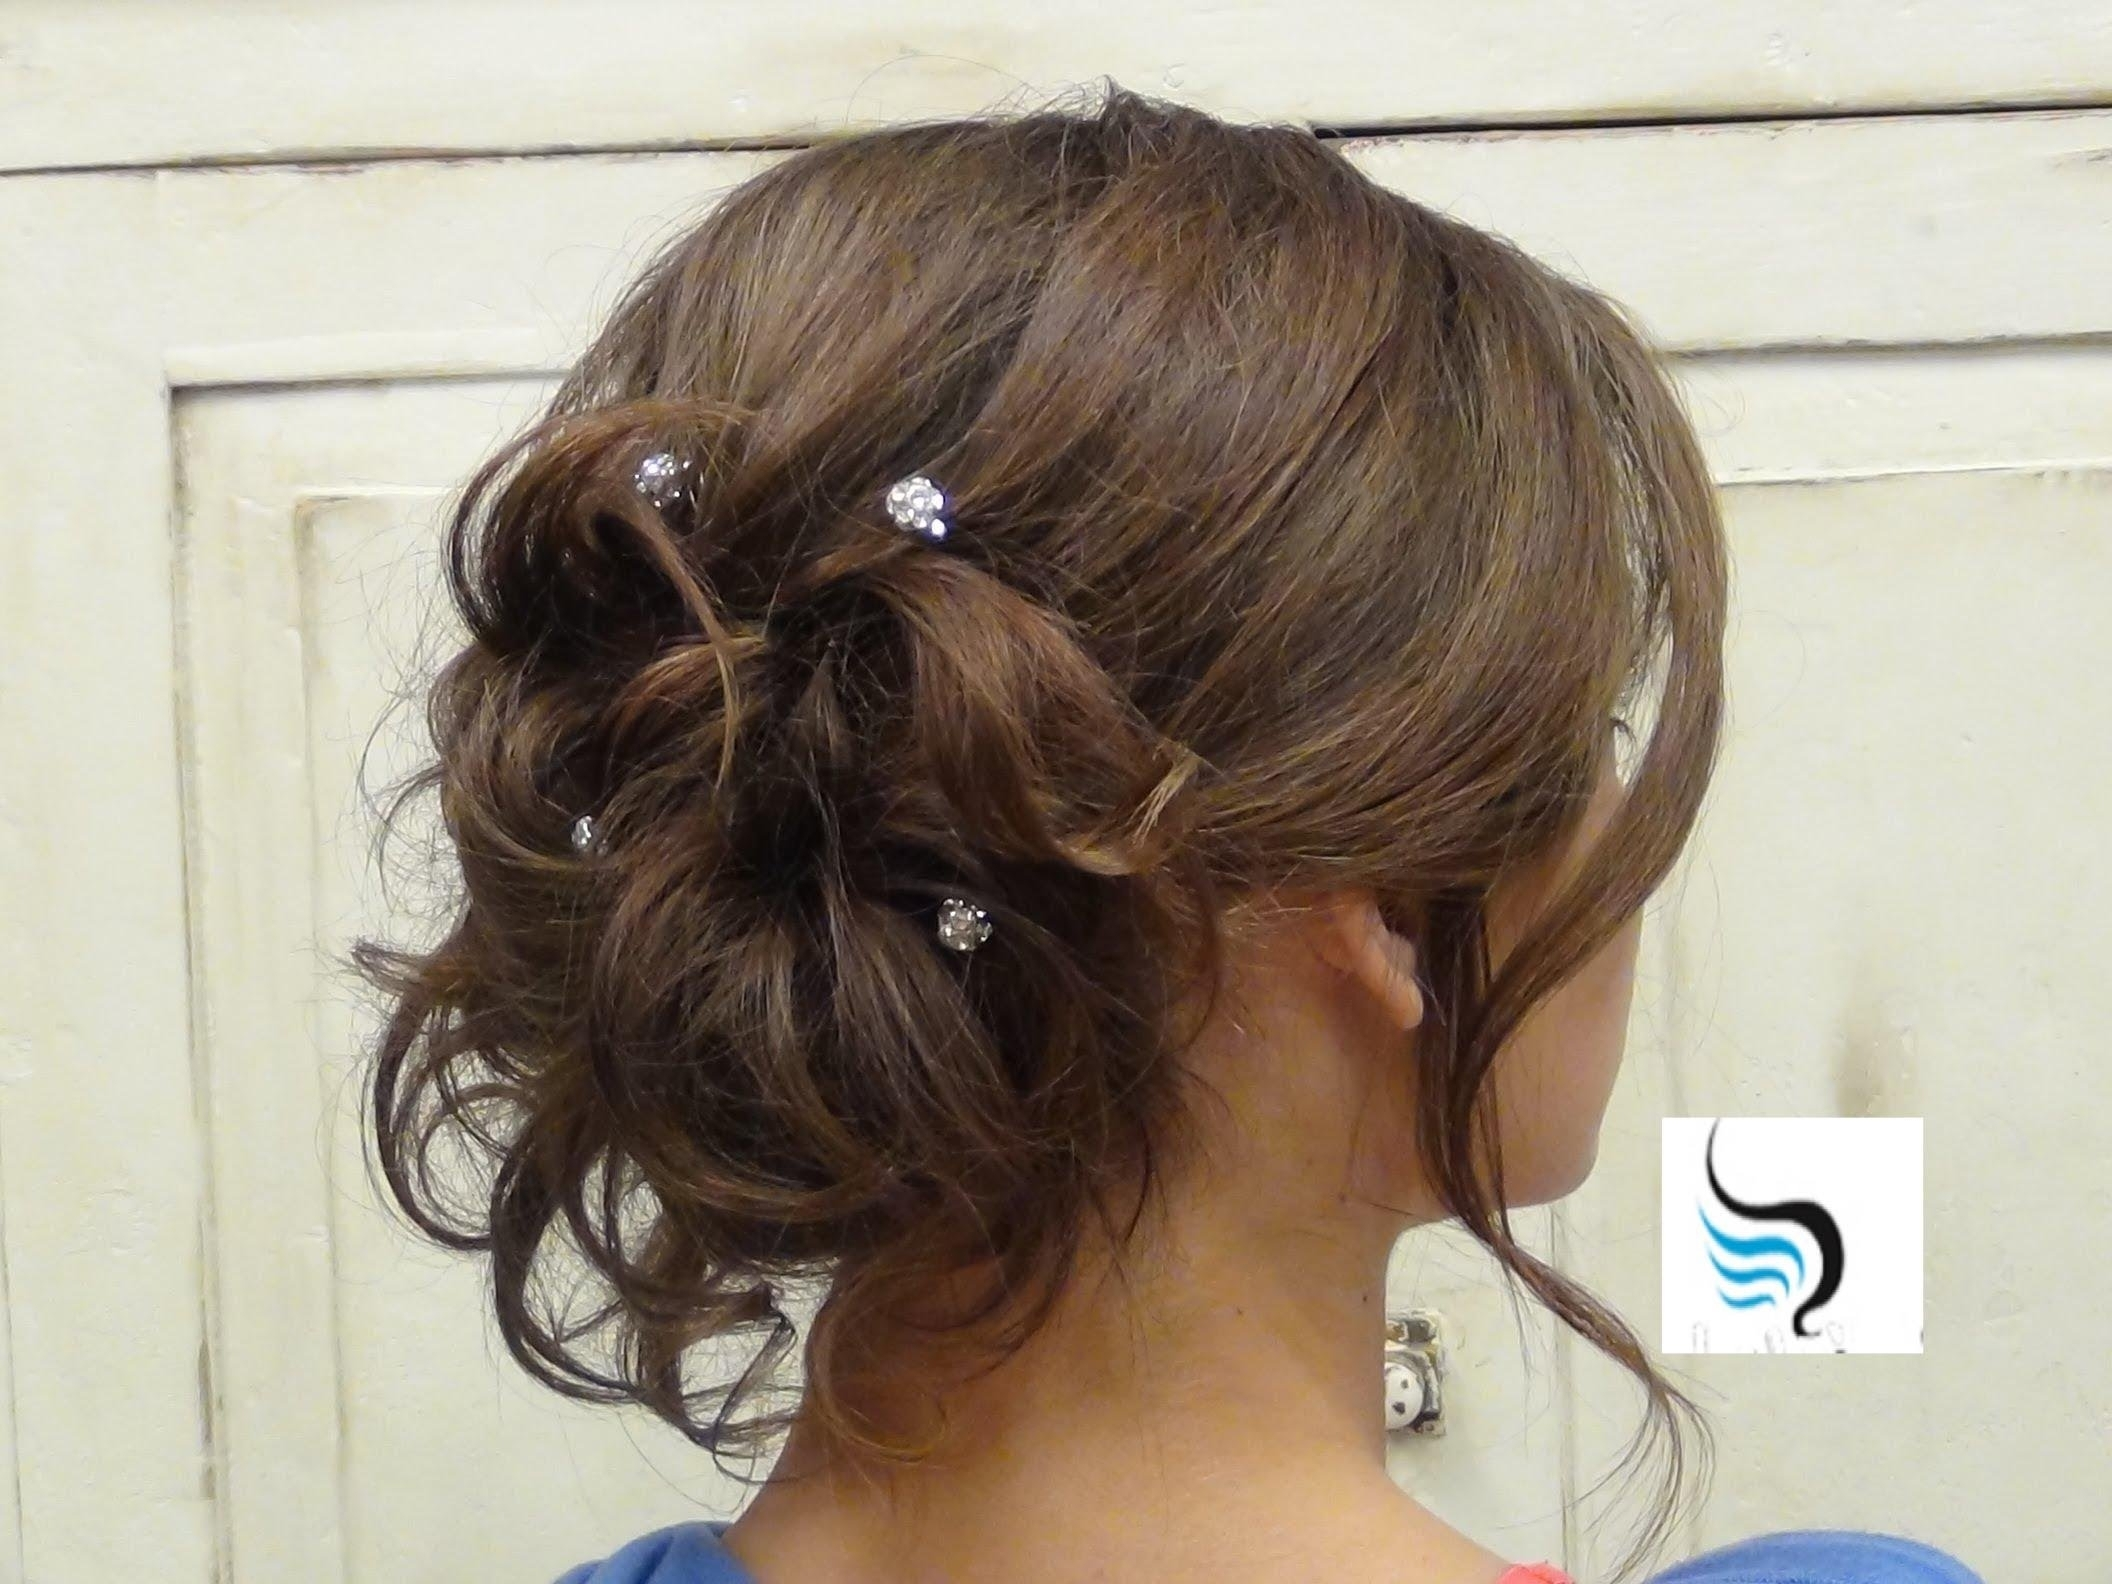 Soft Curled Updo) For Long Hair Prom Or Wedding Hairstyles – Youtube Intended For Most Up To Date Put Up Wedding Hairstyles (View 1 of 15)